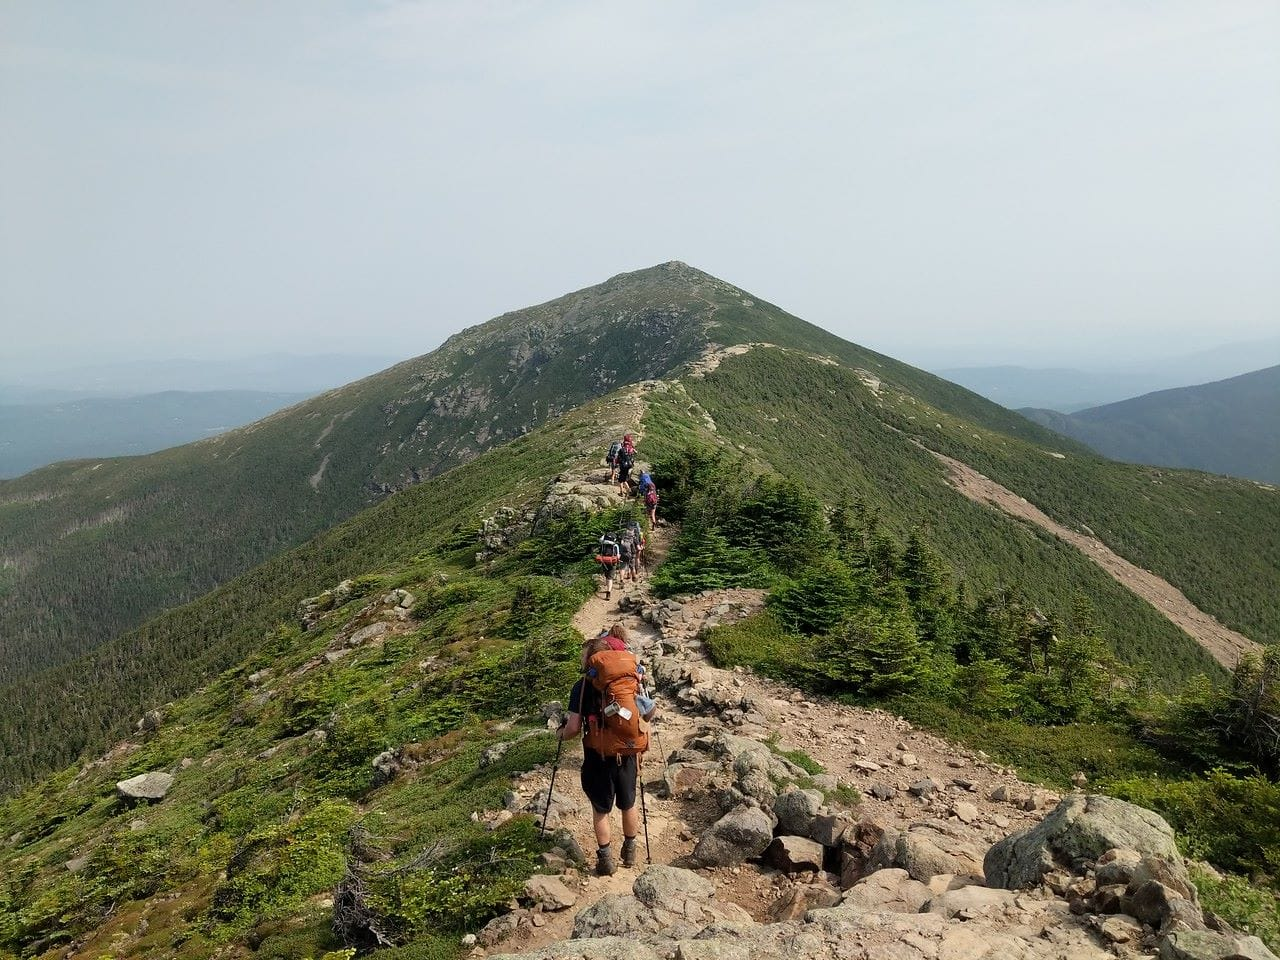 A group of campers ridge running on the appalachian trail while on an overland hiking trip this summer